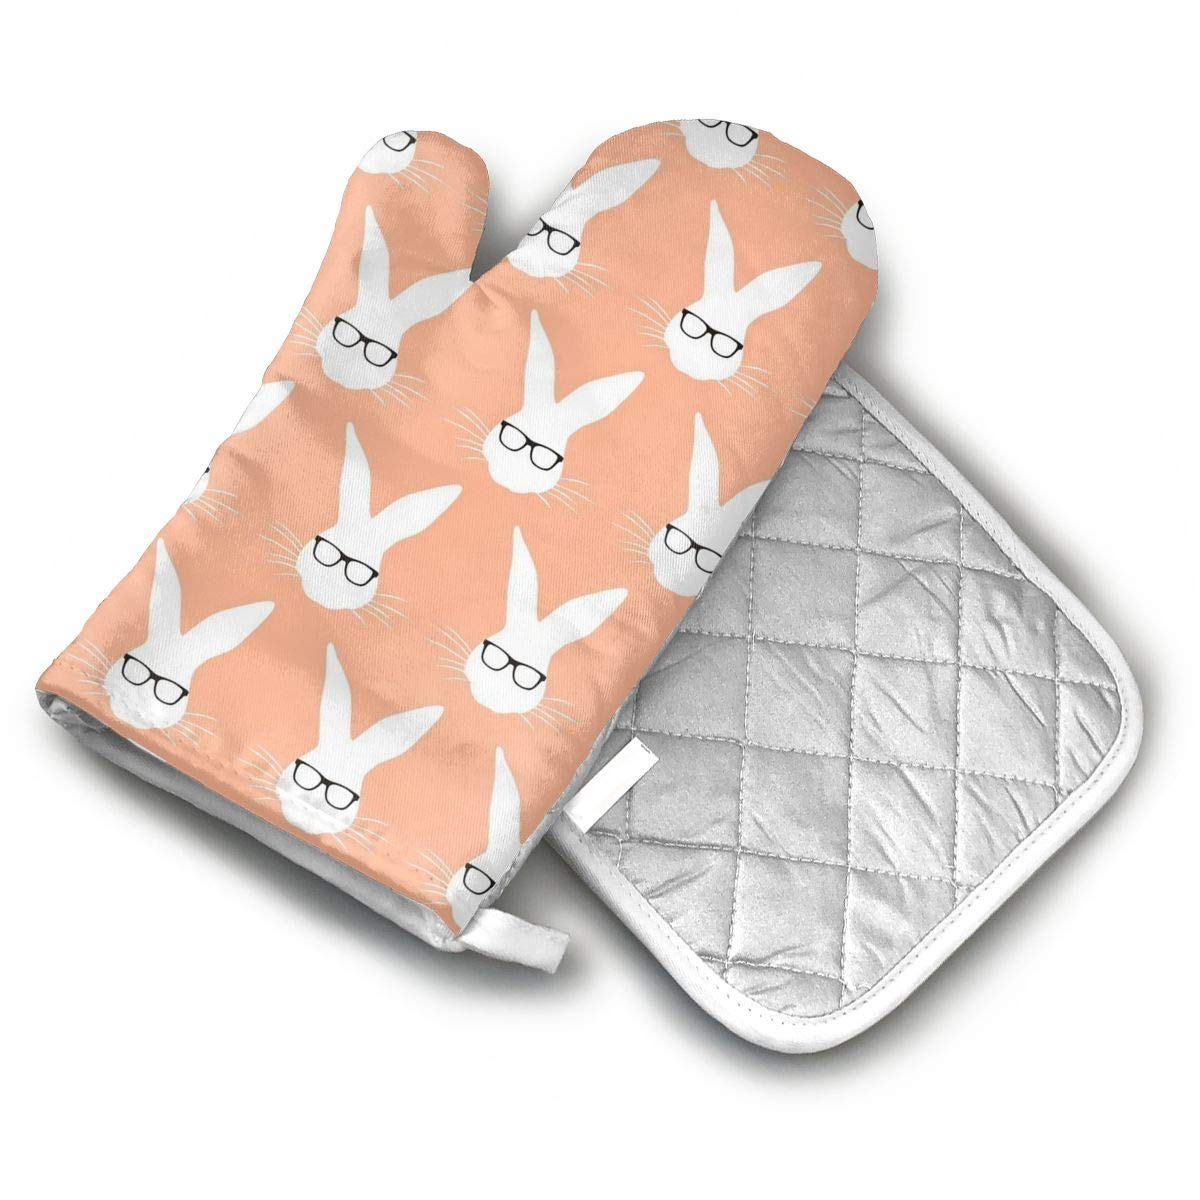 ZYZILYSBS Geeky Bunny Salmon Oven Mitts and Pot Holders Soft Cotton Lining with Non-Slip Surface Heat Resistant Oven Gloves for Kitchen BBQ Cooking Baking Grilling Microwave